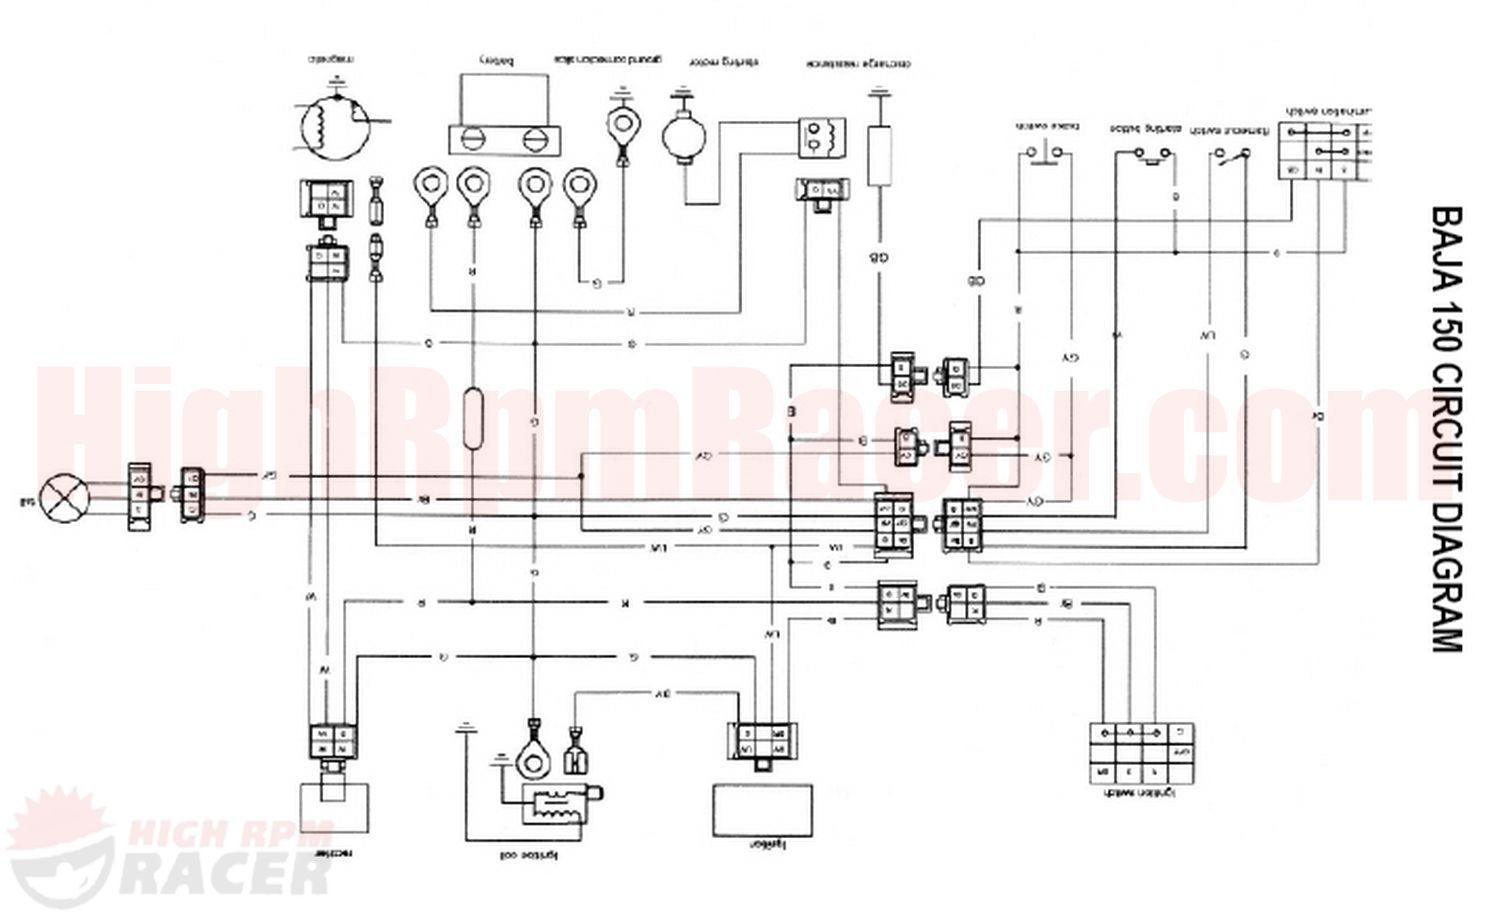 Peace Sports 110Cc Atv Wiring Diagram from mainetreasurechest.com